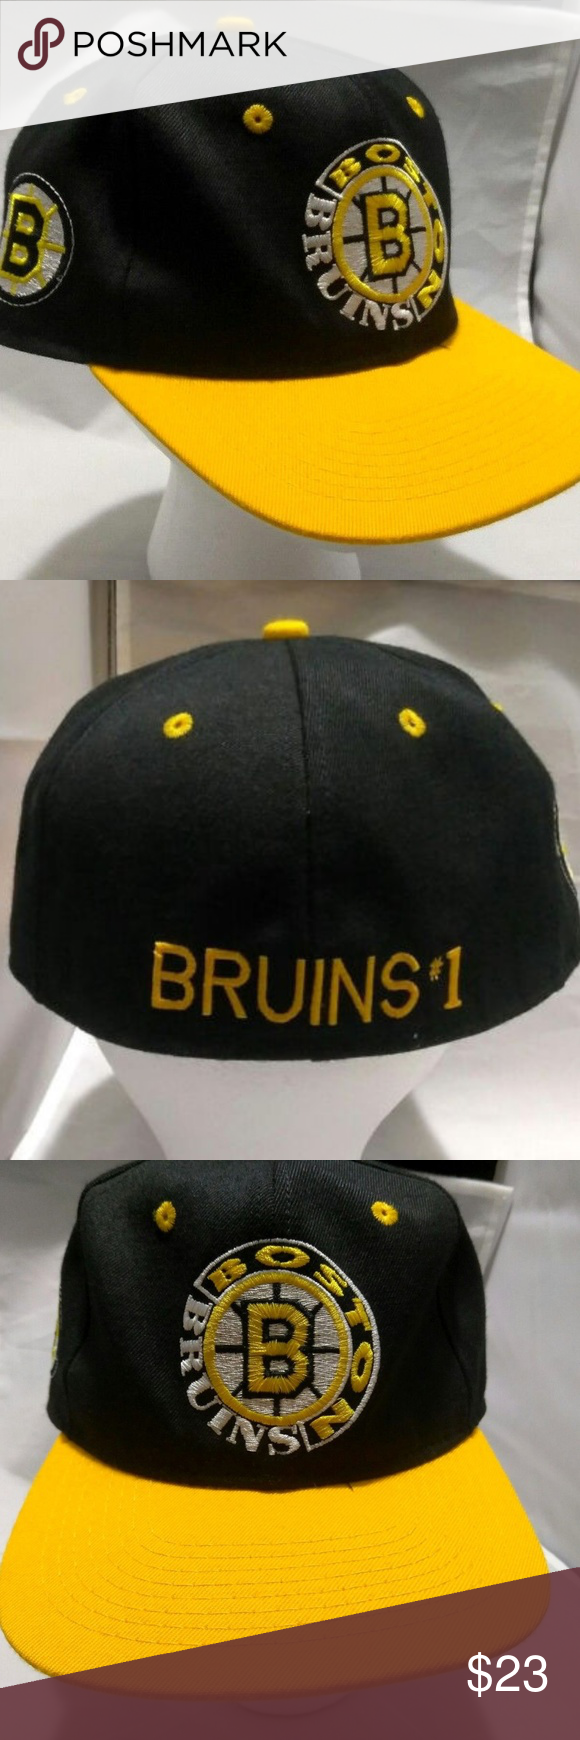 38aa55f212a Boston Bruins  1 Apparel Fitted Hat size 7 1 4 NHL Boston Bruins  1 Apparel  Fitted Hat size 7 1 4 NHL Hockey NHL 90s Vtg EUC... Looks great....Thank  You.